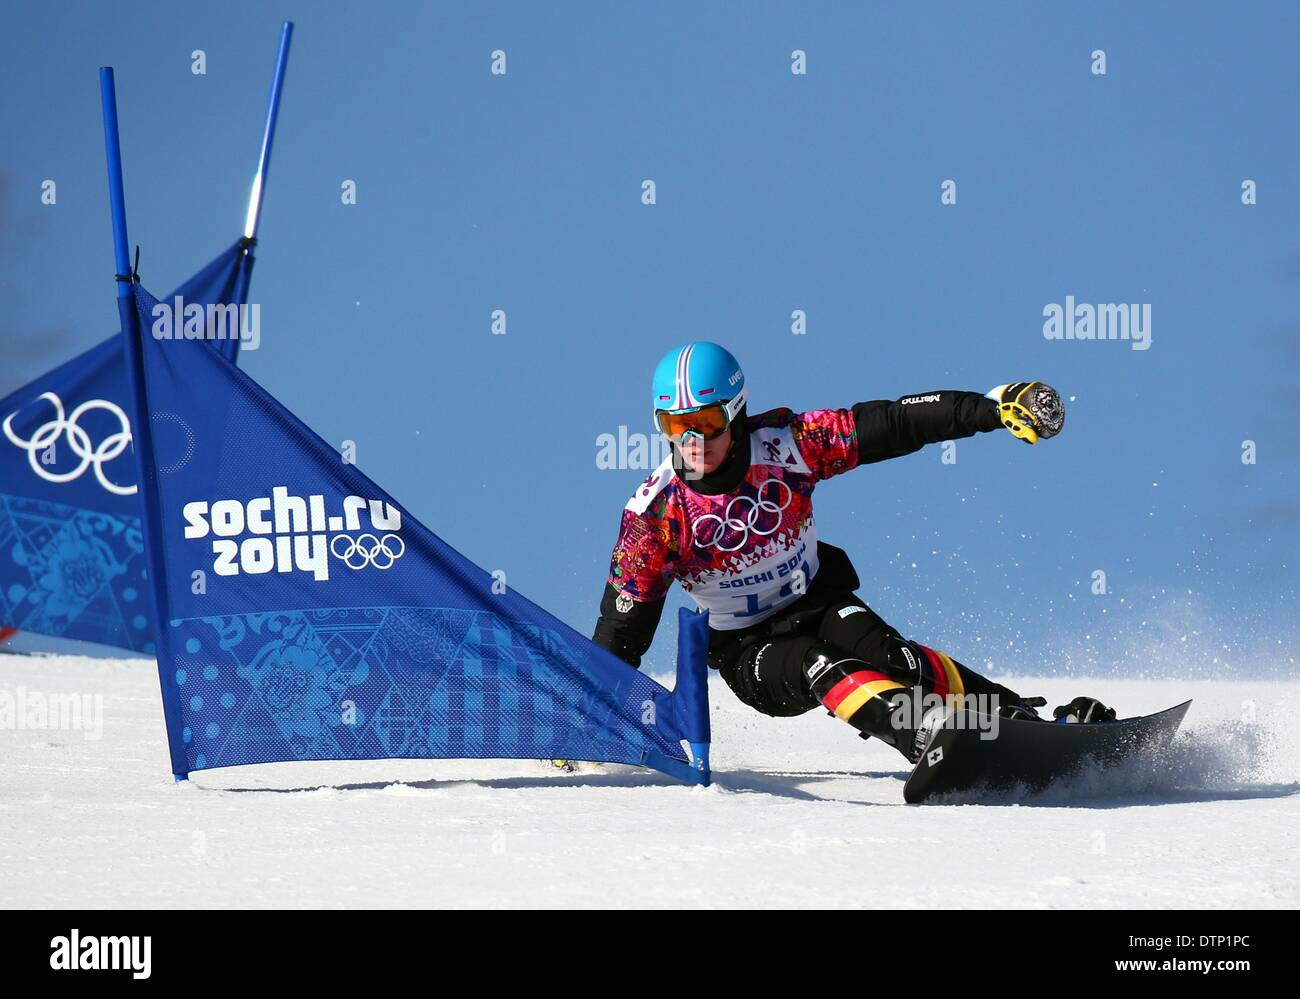 Sochi, Russia. 22nd February 2014. Alexander Bergmann of Germany in action during the Men's Snowboard Parallel - Stock Image